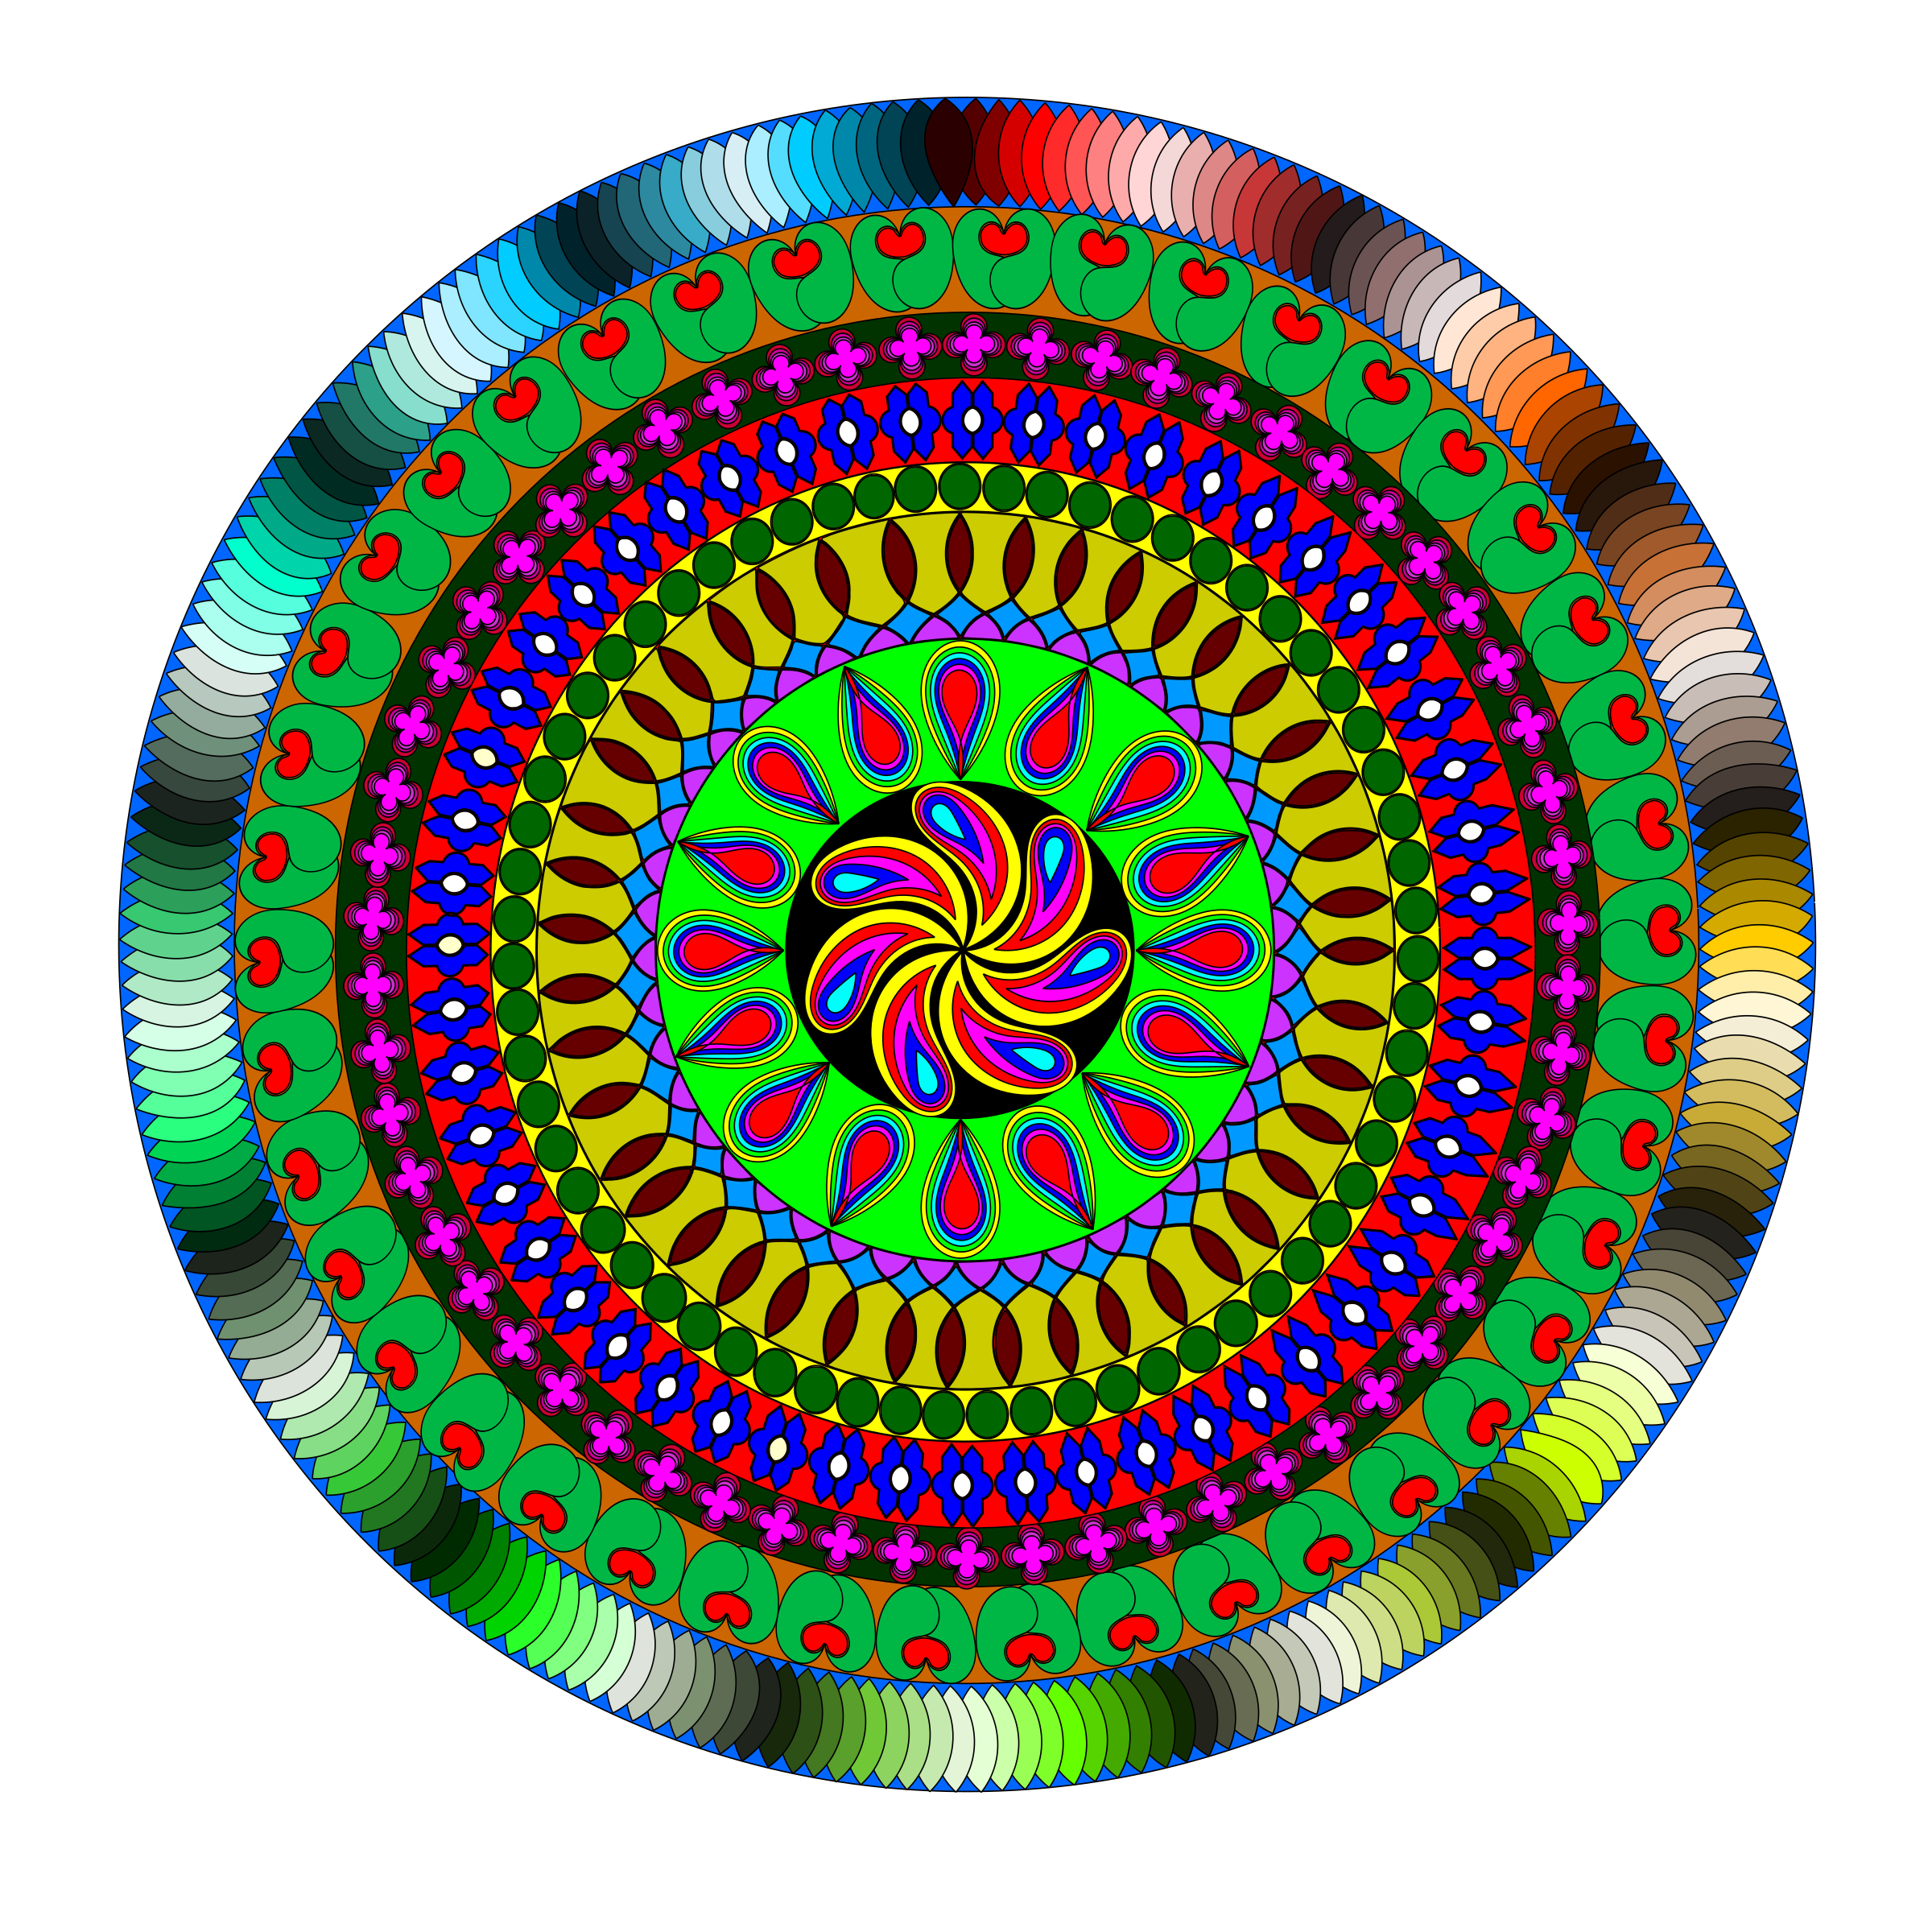 Colourful Mandala by Siddymcbill